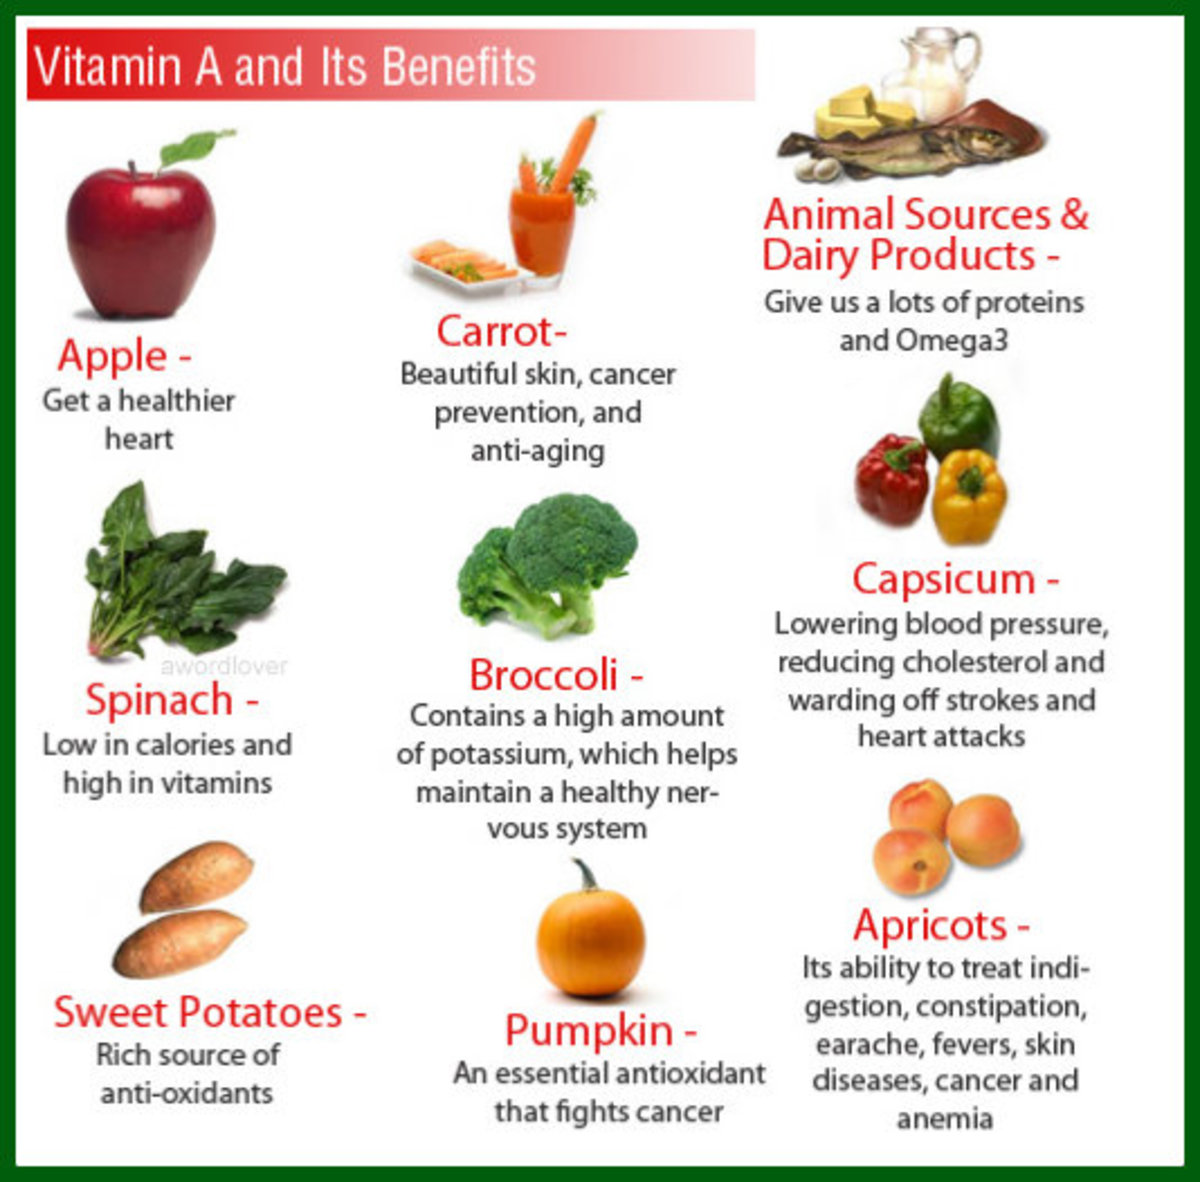 Another graphic listing food sources and the corresponding body function